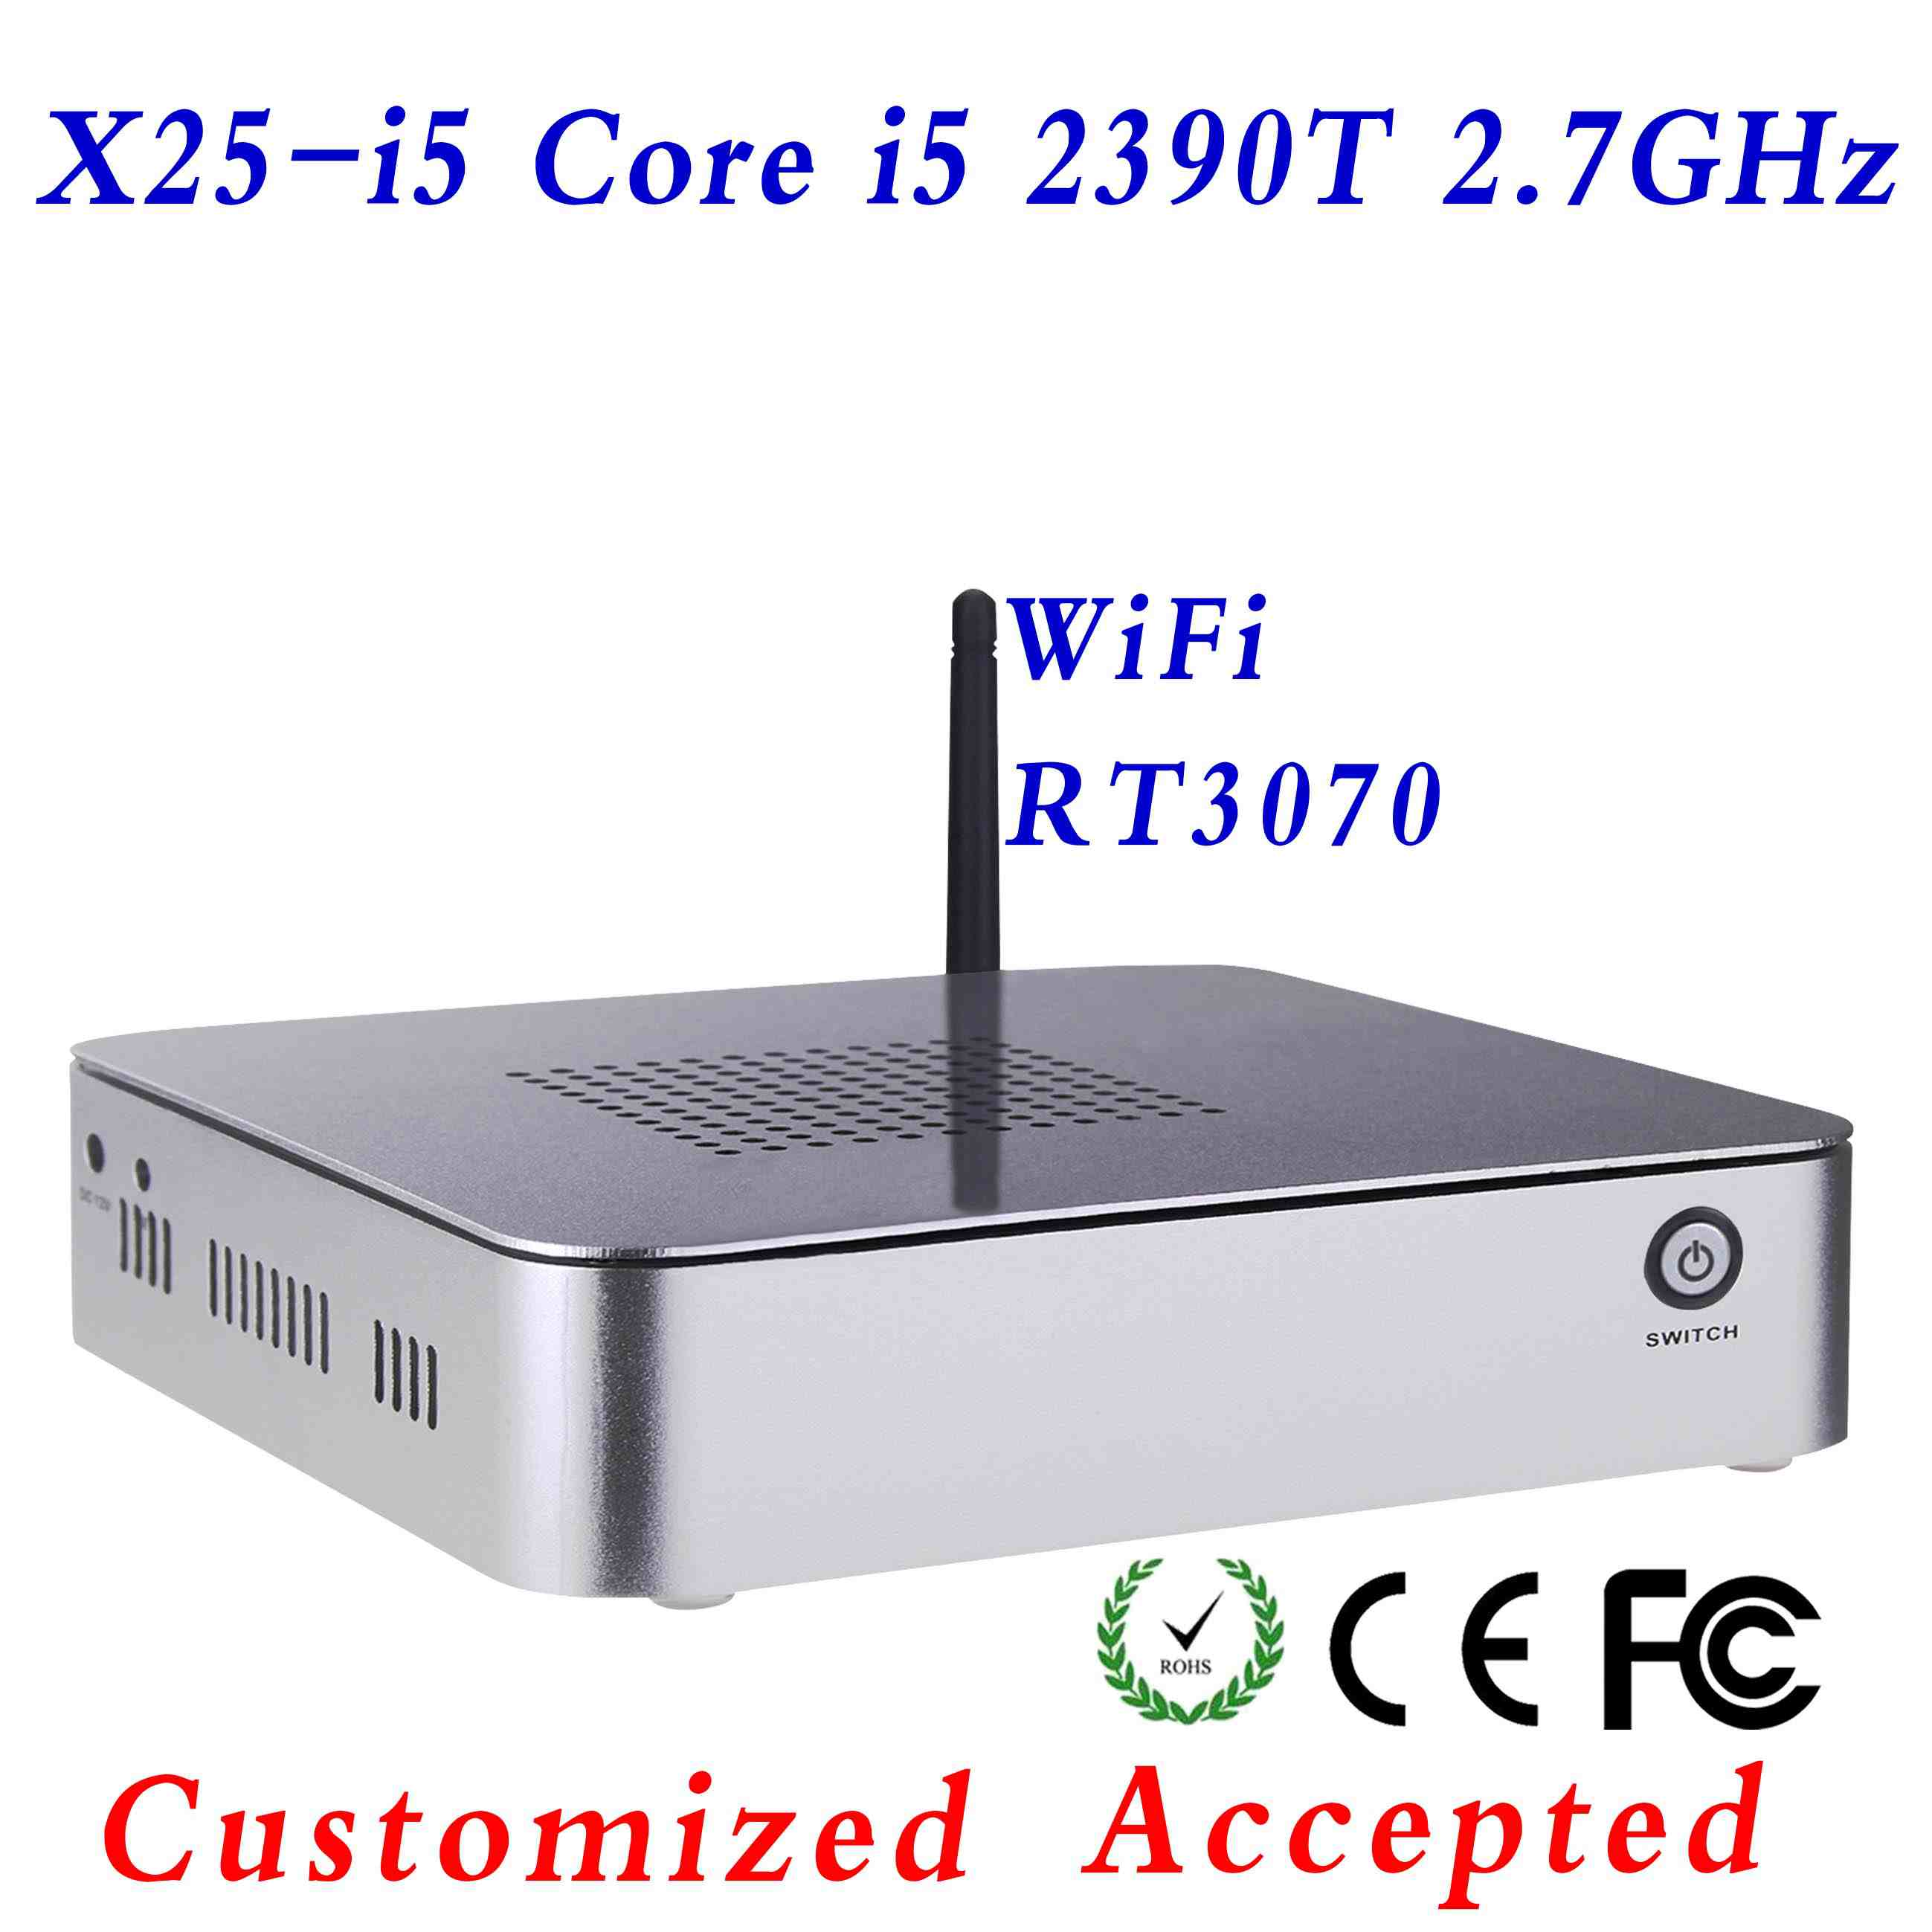 small size pc games vga mini pc mini pc desktop x25-i5 3570T support wireless keyboard, mouse and touch screen